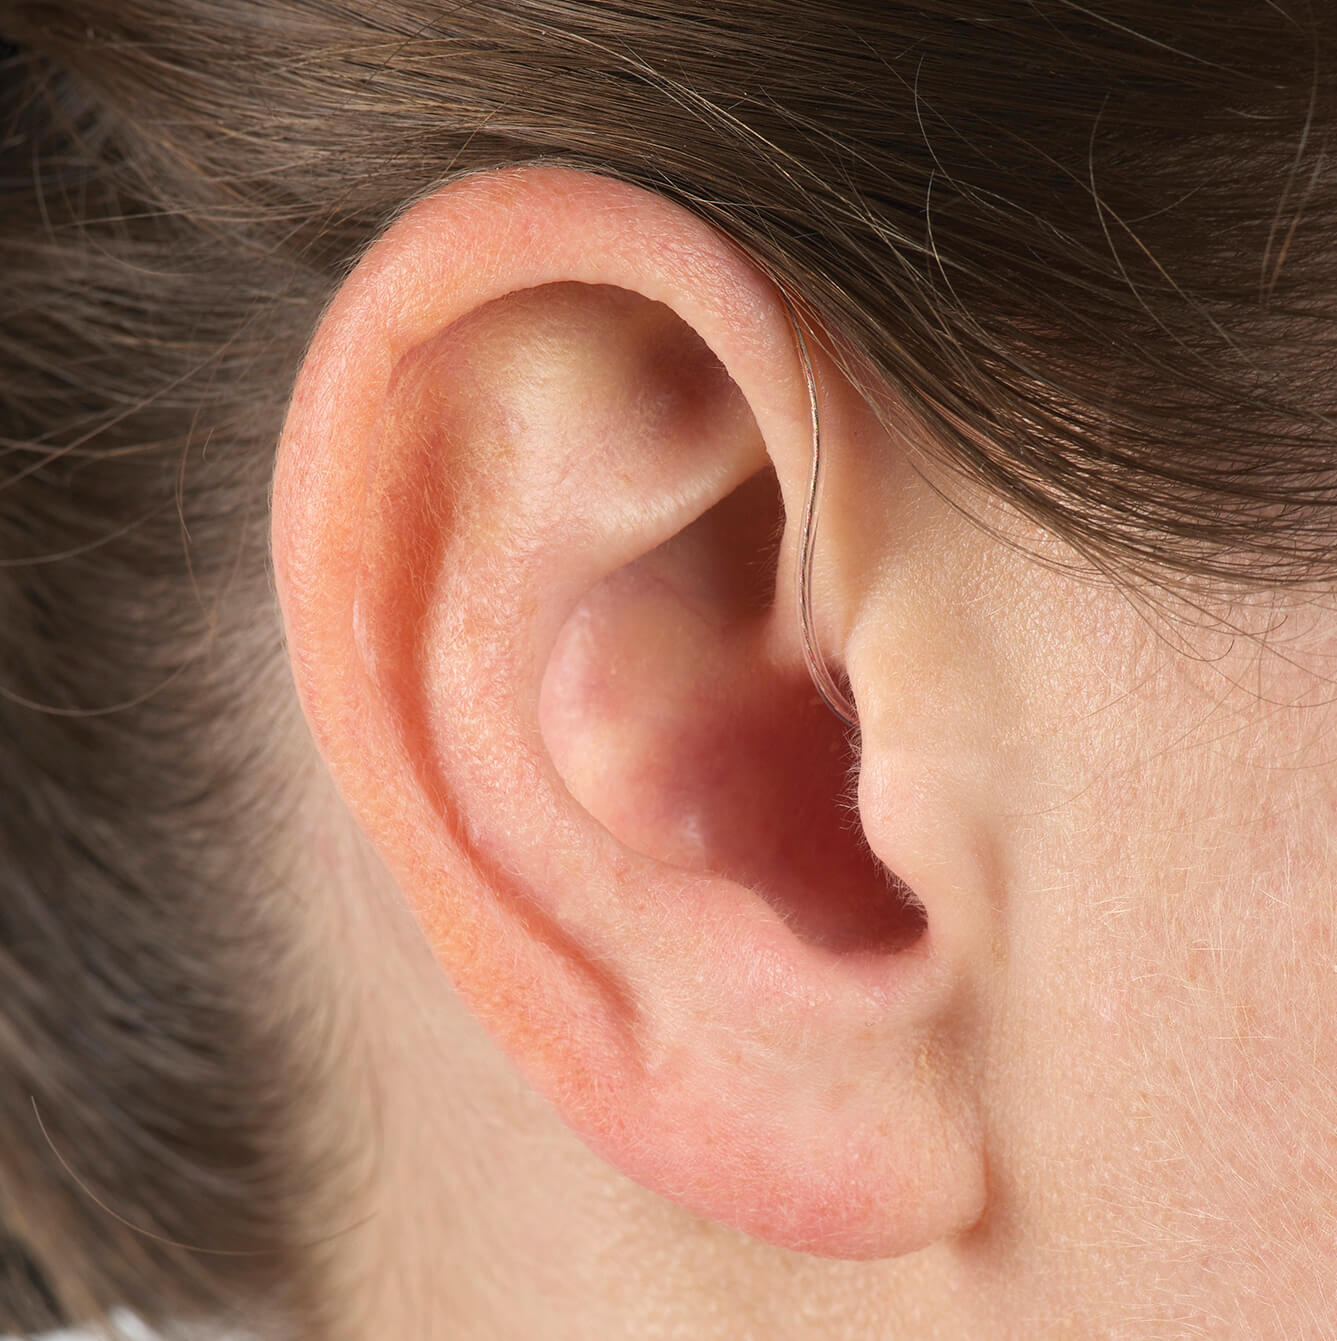 RITE- Receiver in the ear